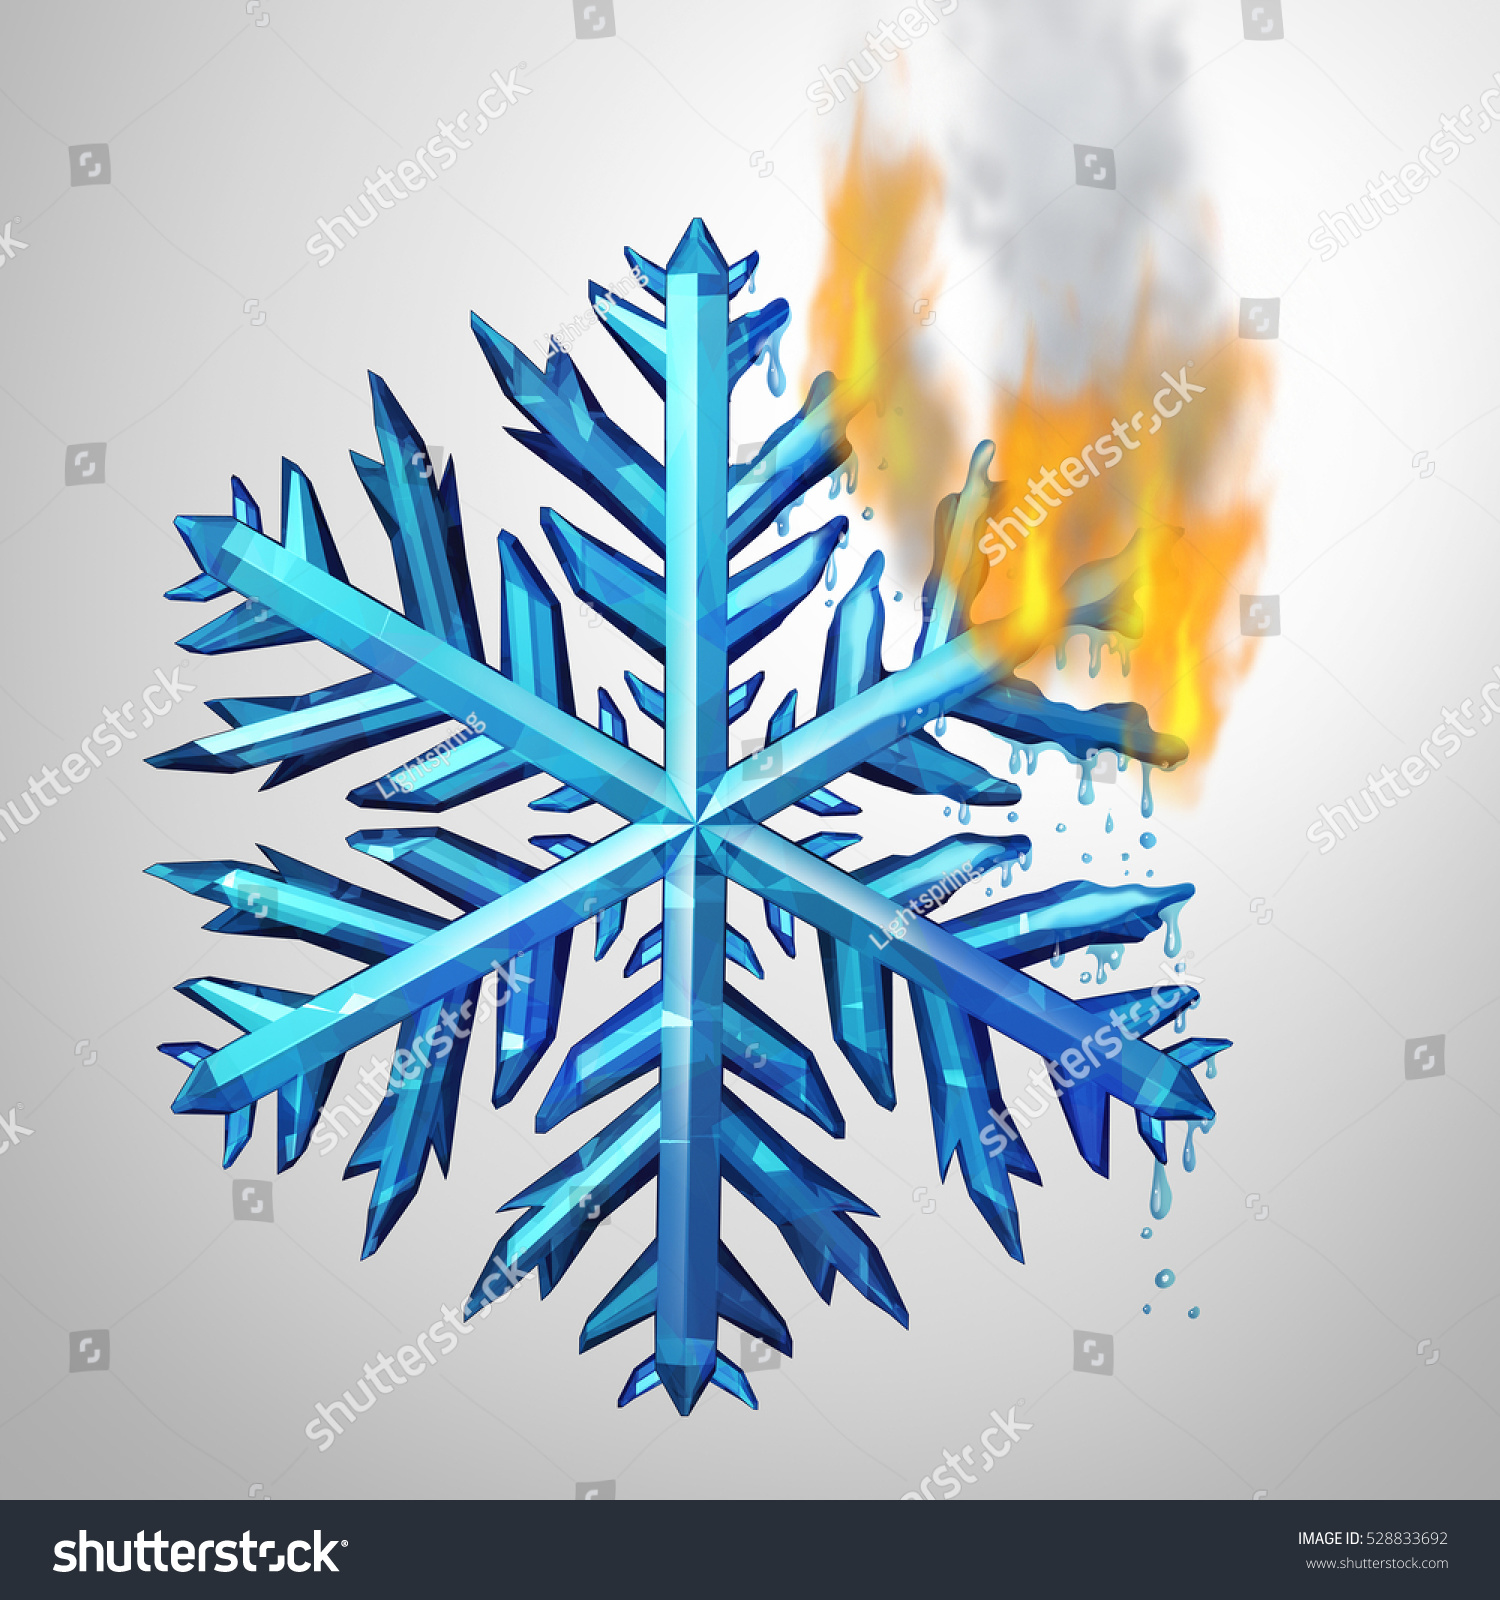 Changing Climate Concept Frozen Ice Crystal Stock Illustration ...